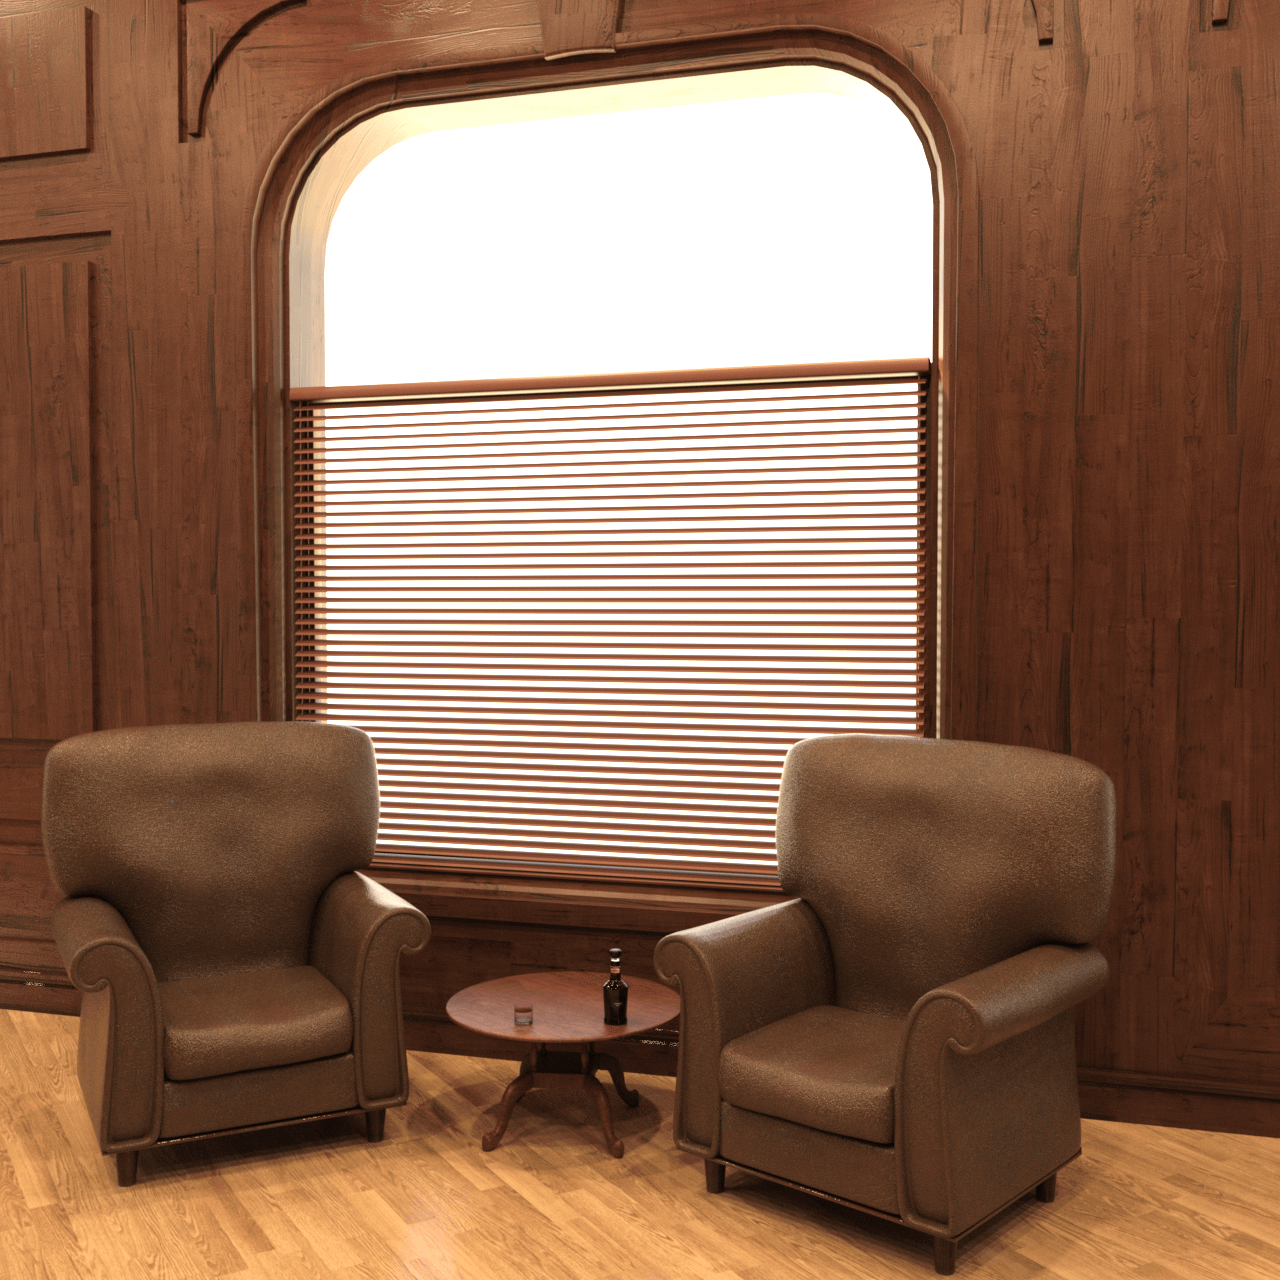 Two chairs, table and drink props rendering.